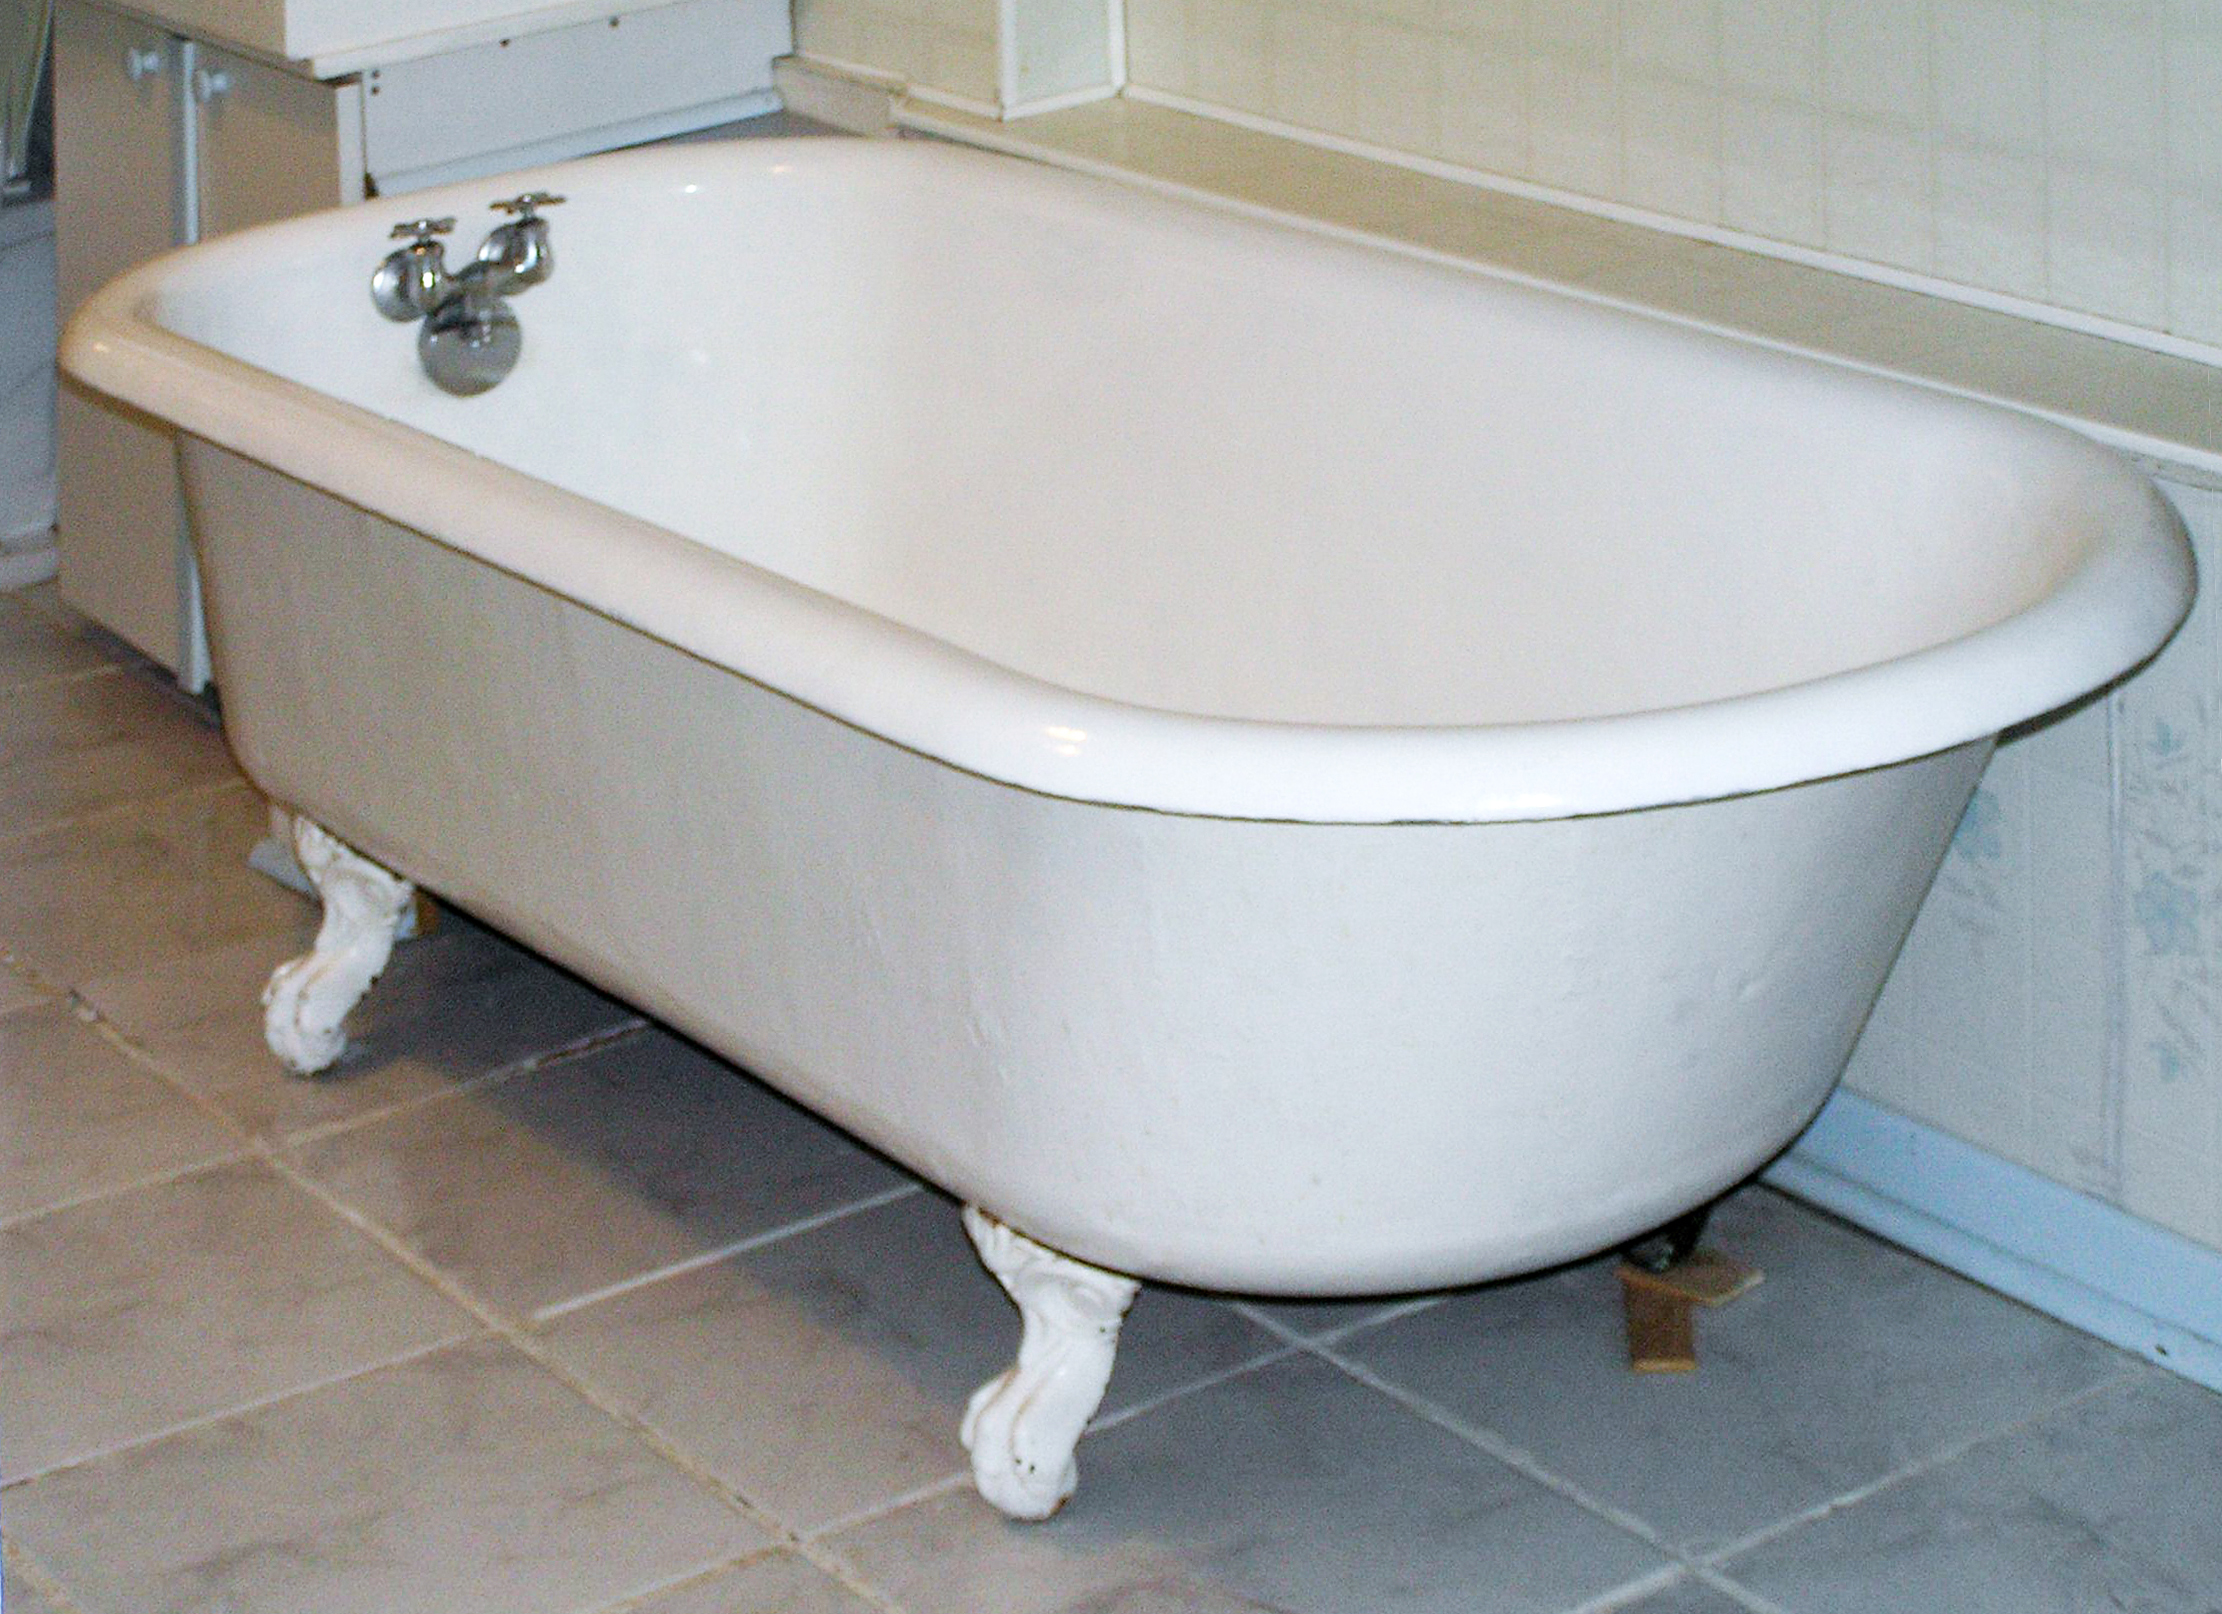 old claw cast bathtub bathtubs shower fixtures paint measurements clawfoot tub refinishing antique white fashioned iron